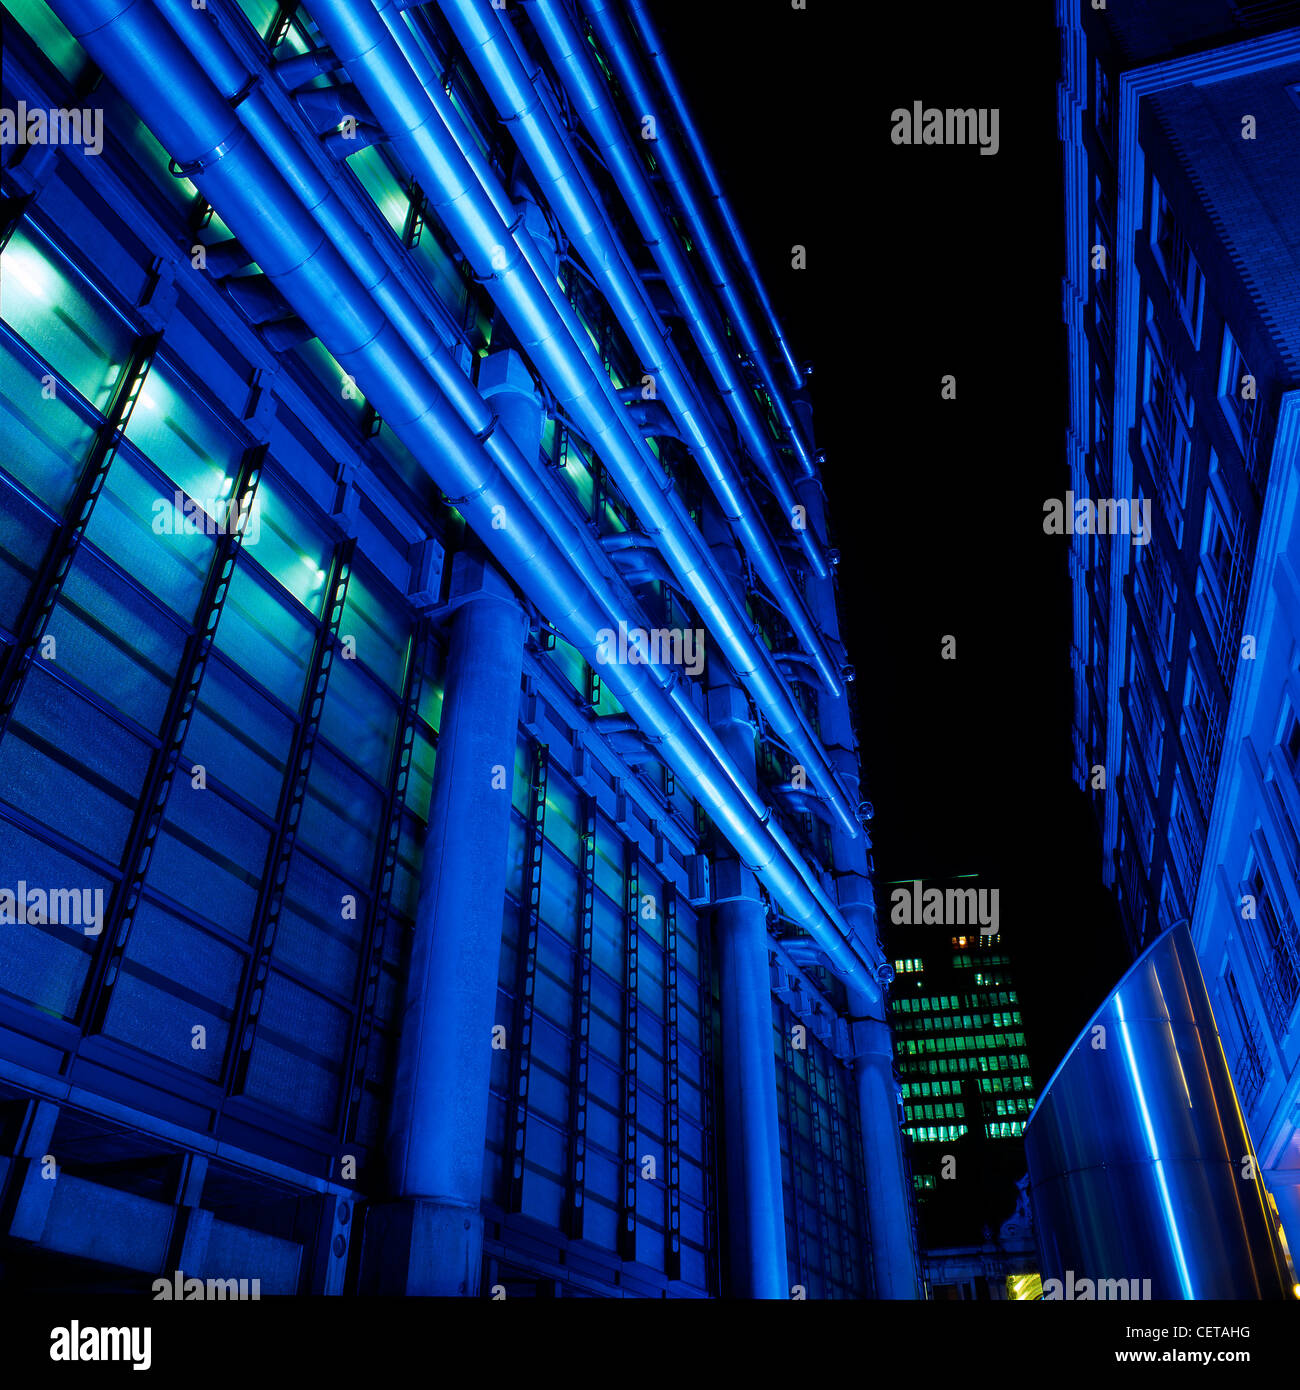 Lloyds Bank Building in Gresham Street at night. Lloyds Bank was one of the oldest banks in the UK, formed in 1765 - Stock Image